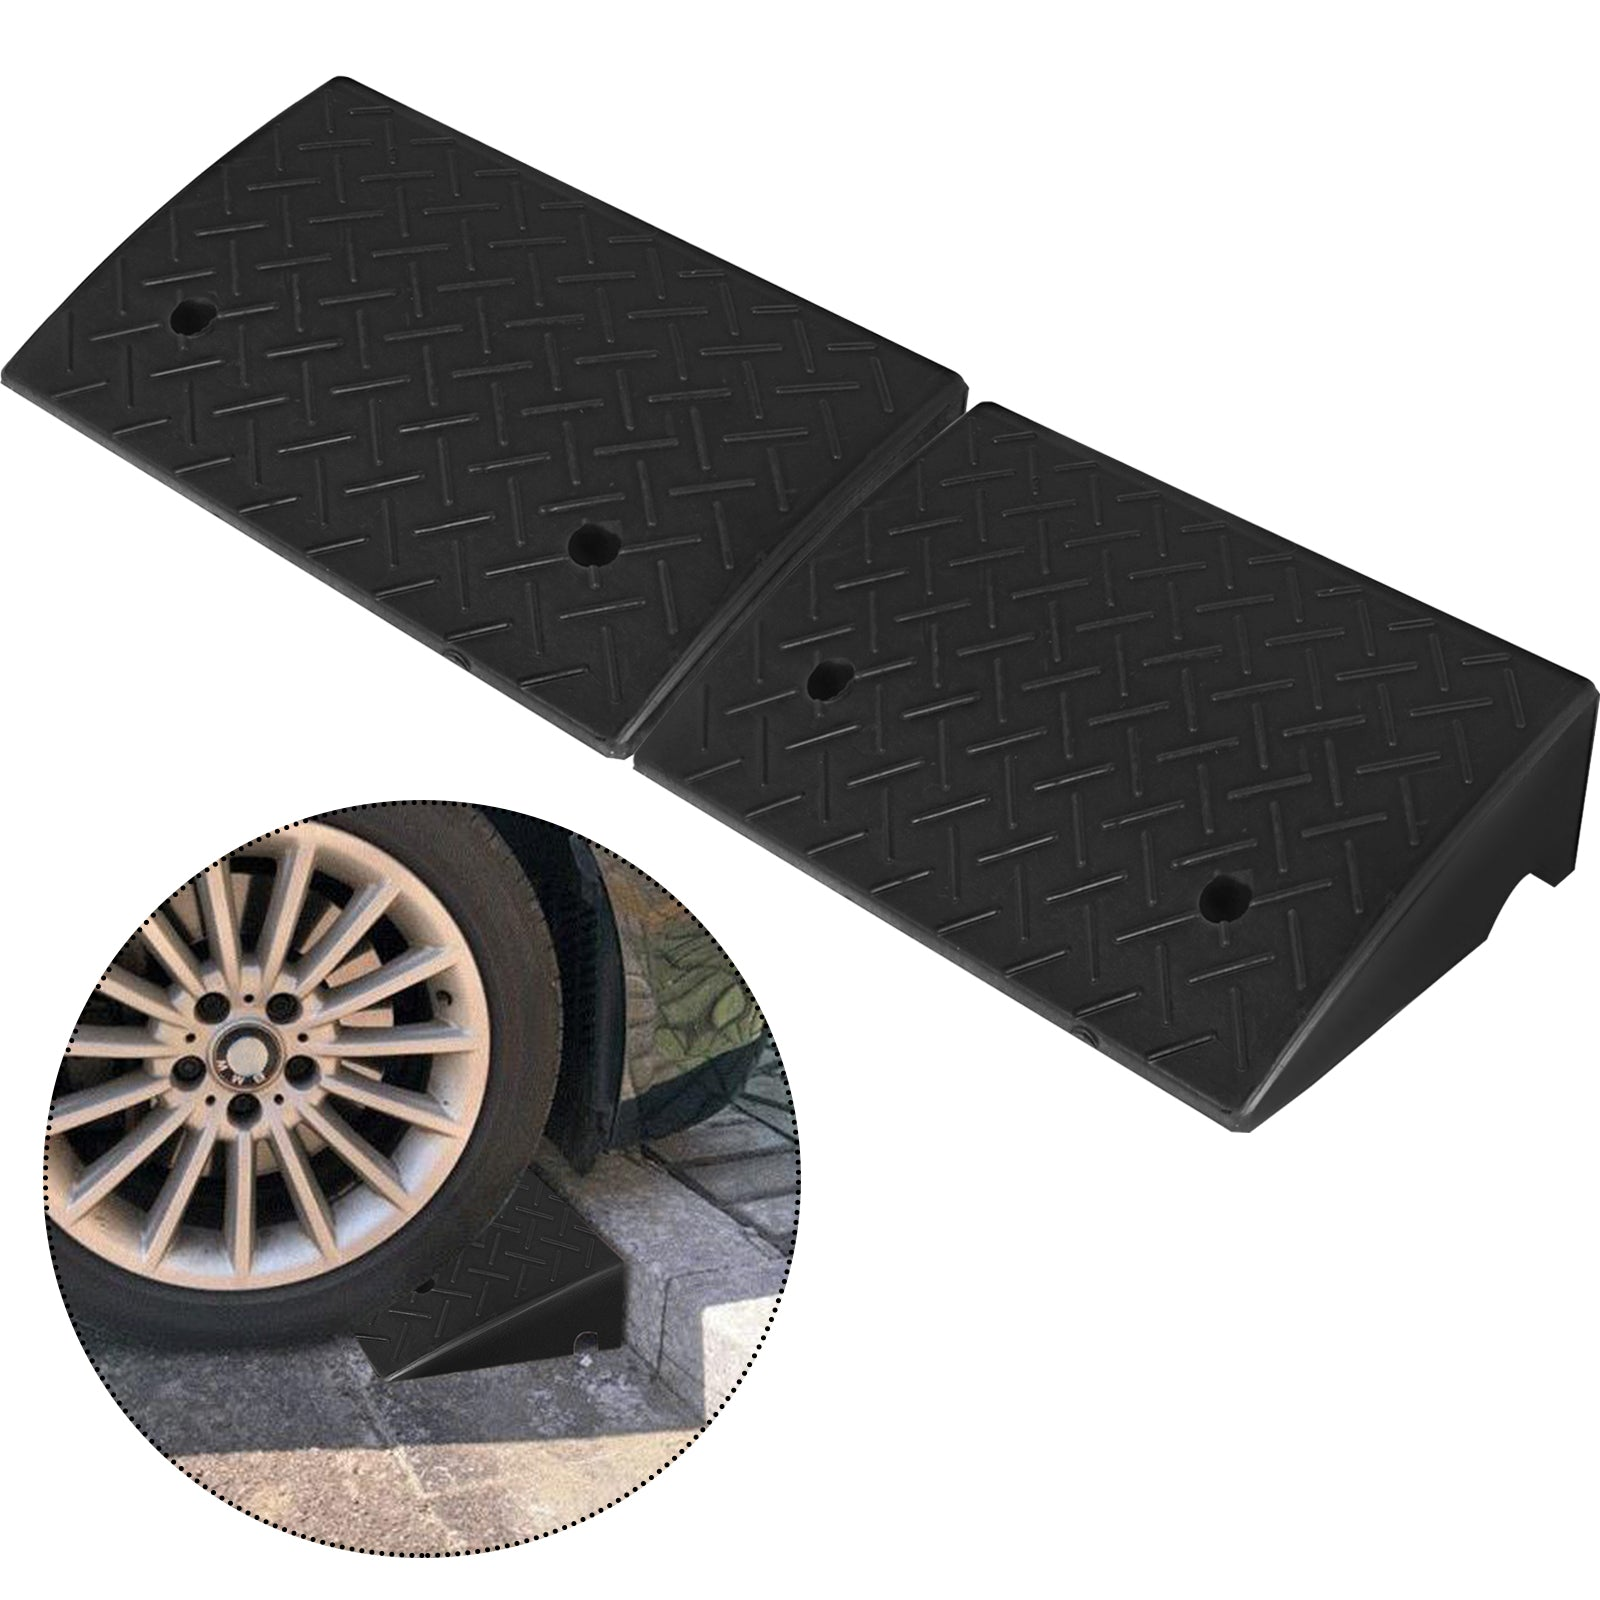 Rubber Threshold Ramp Curb Ramp Truck Dock Plate2 Pack 19''x12.7''x5.3""